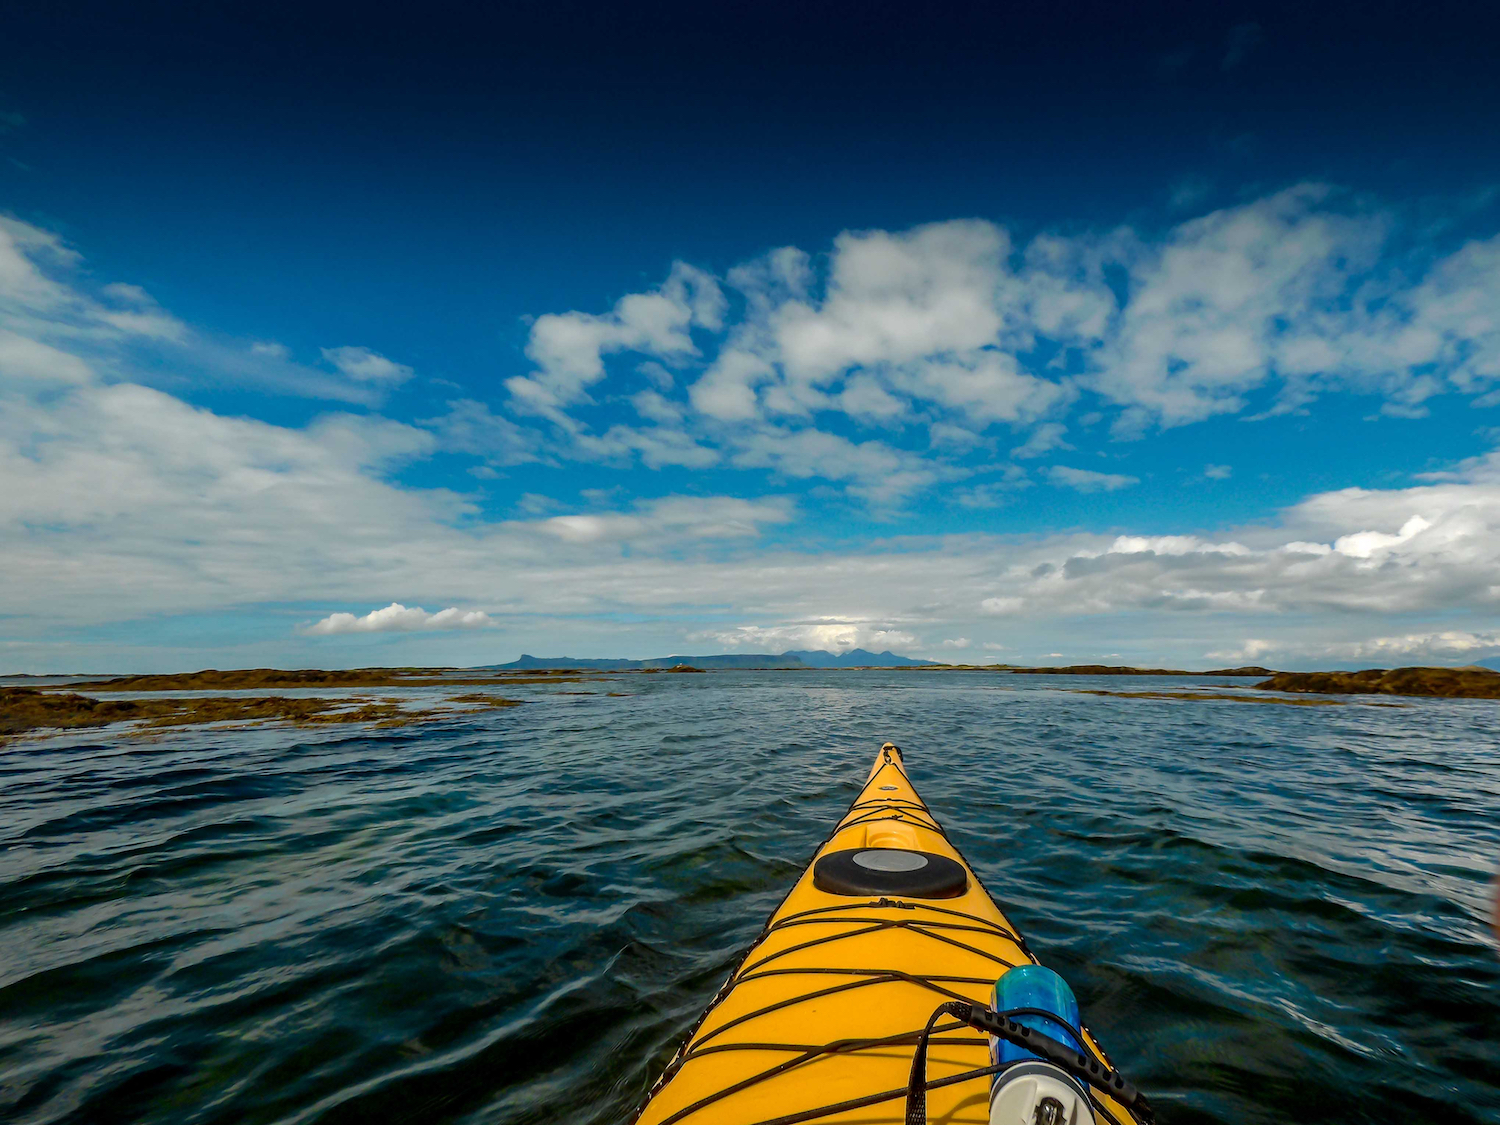 Sea kayaking expedition - Arisaig